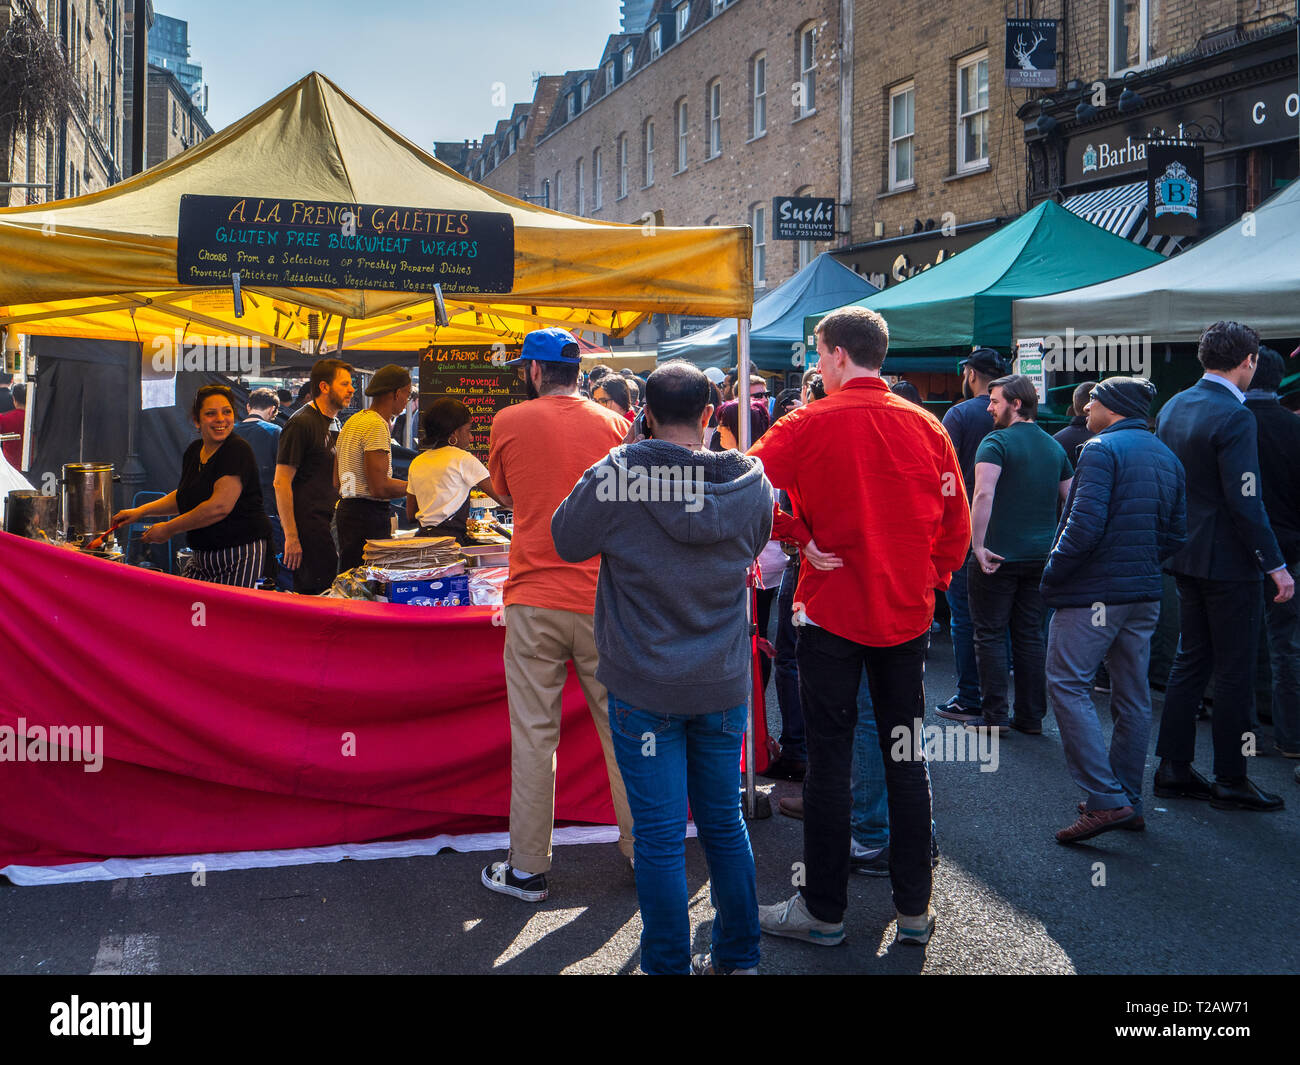 London Street Food Market Whitecross Street - City workers buy lunch at the food stalls on Whitecross Street near the Barbican London - Stock Image